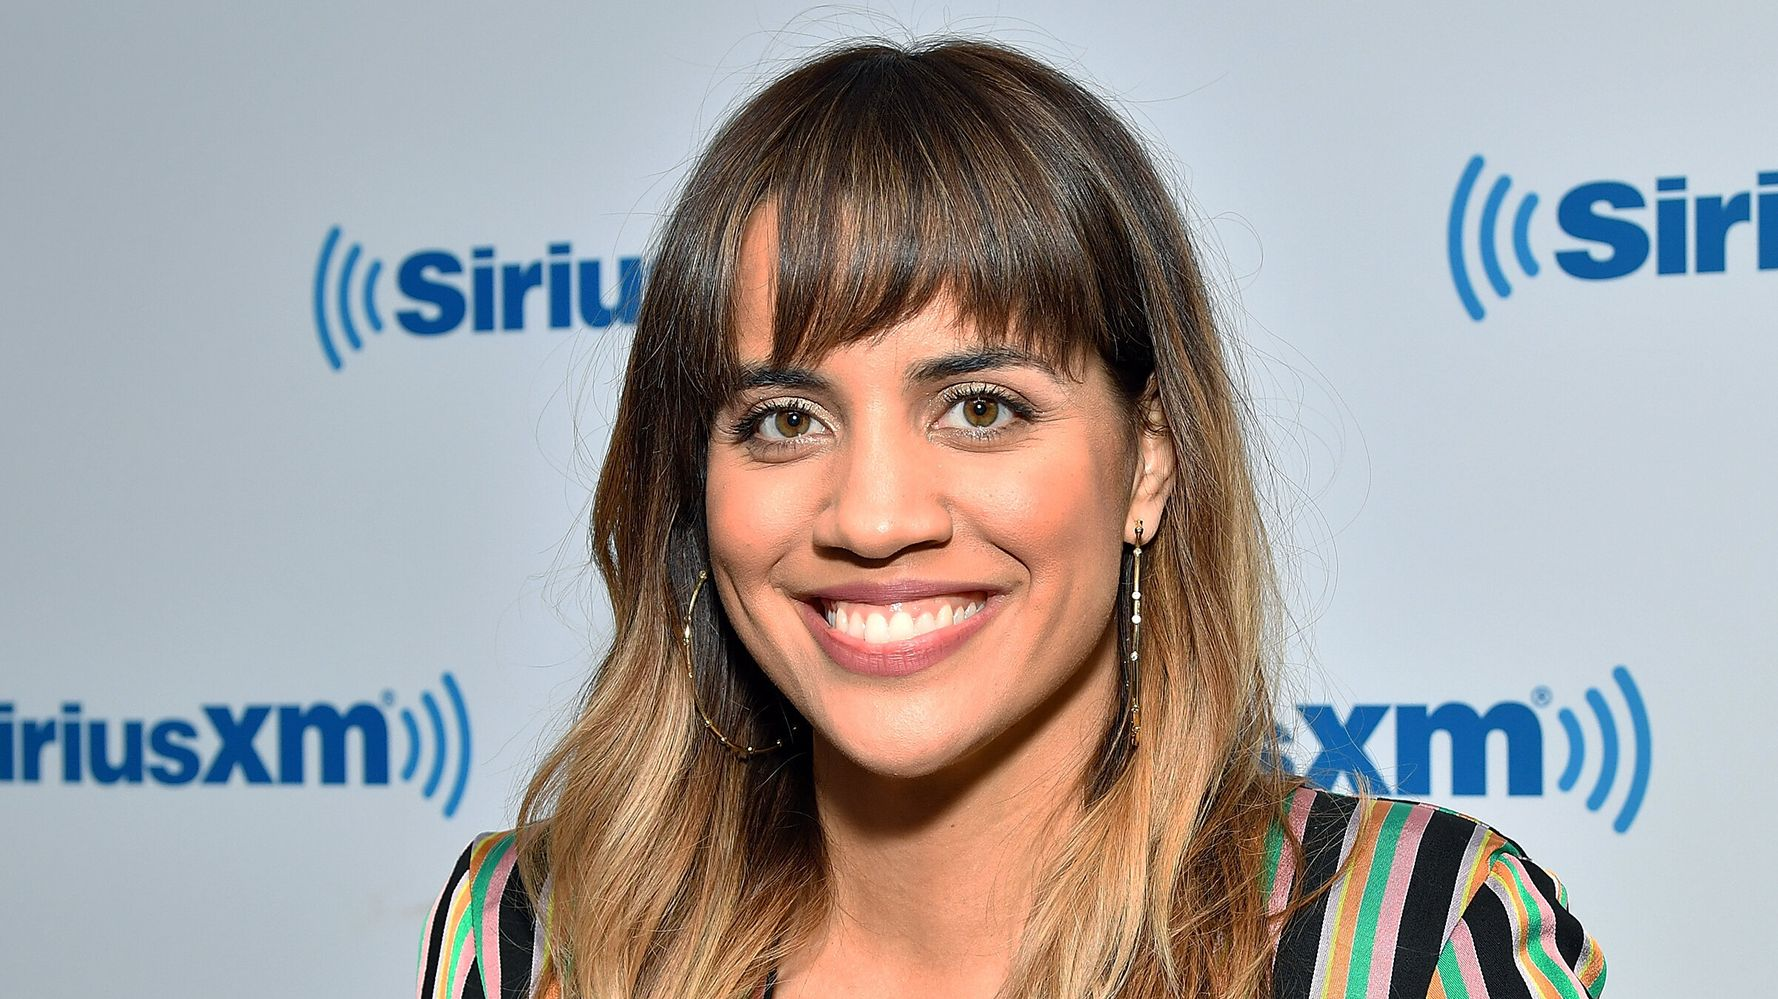 Actor Natalie Morales Explains Why She Thinks Trump Appealed To Many Latino Voters